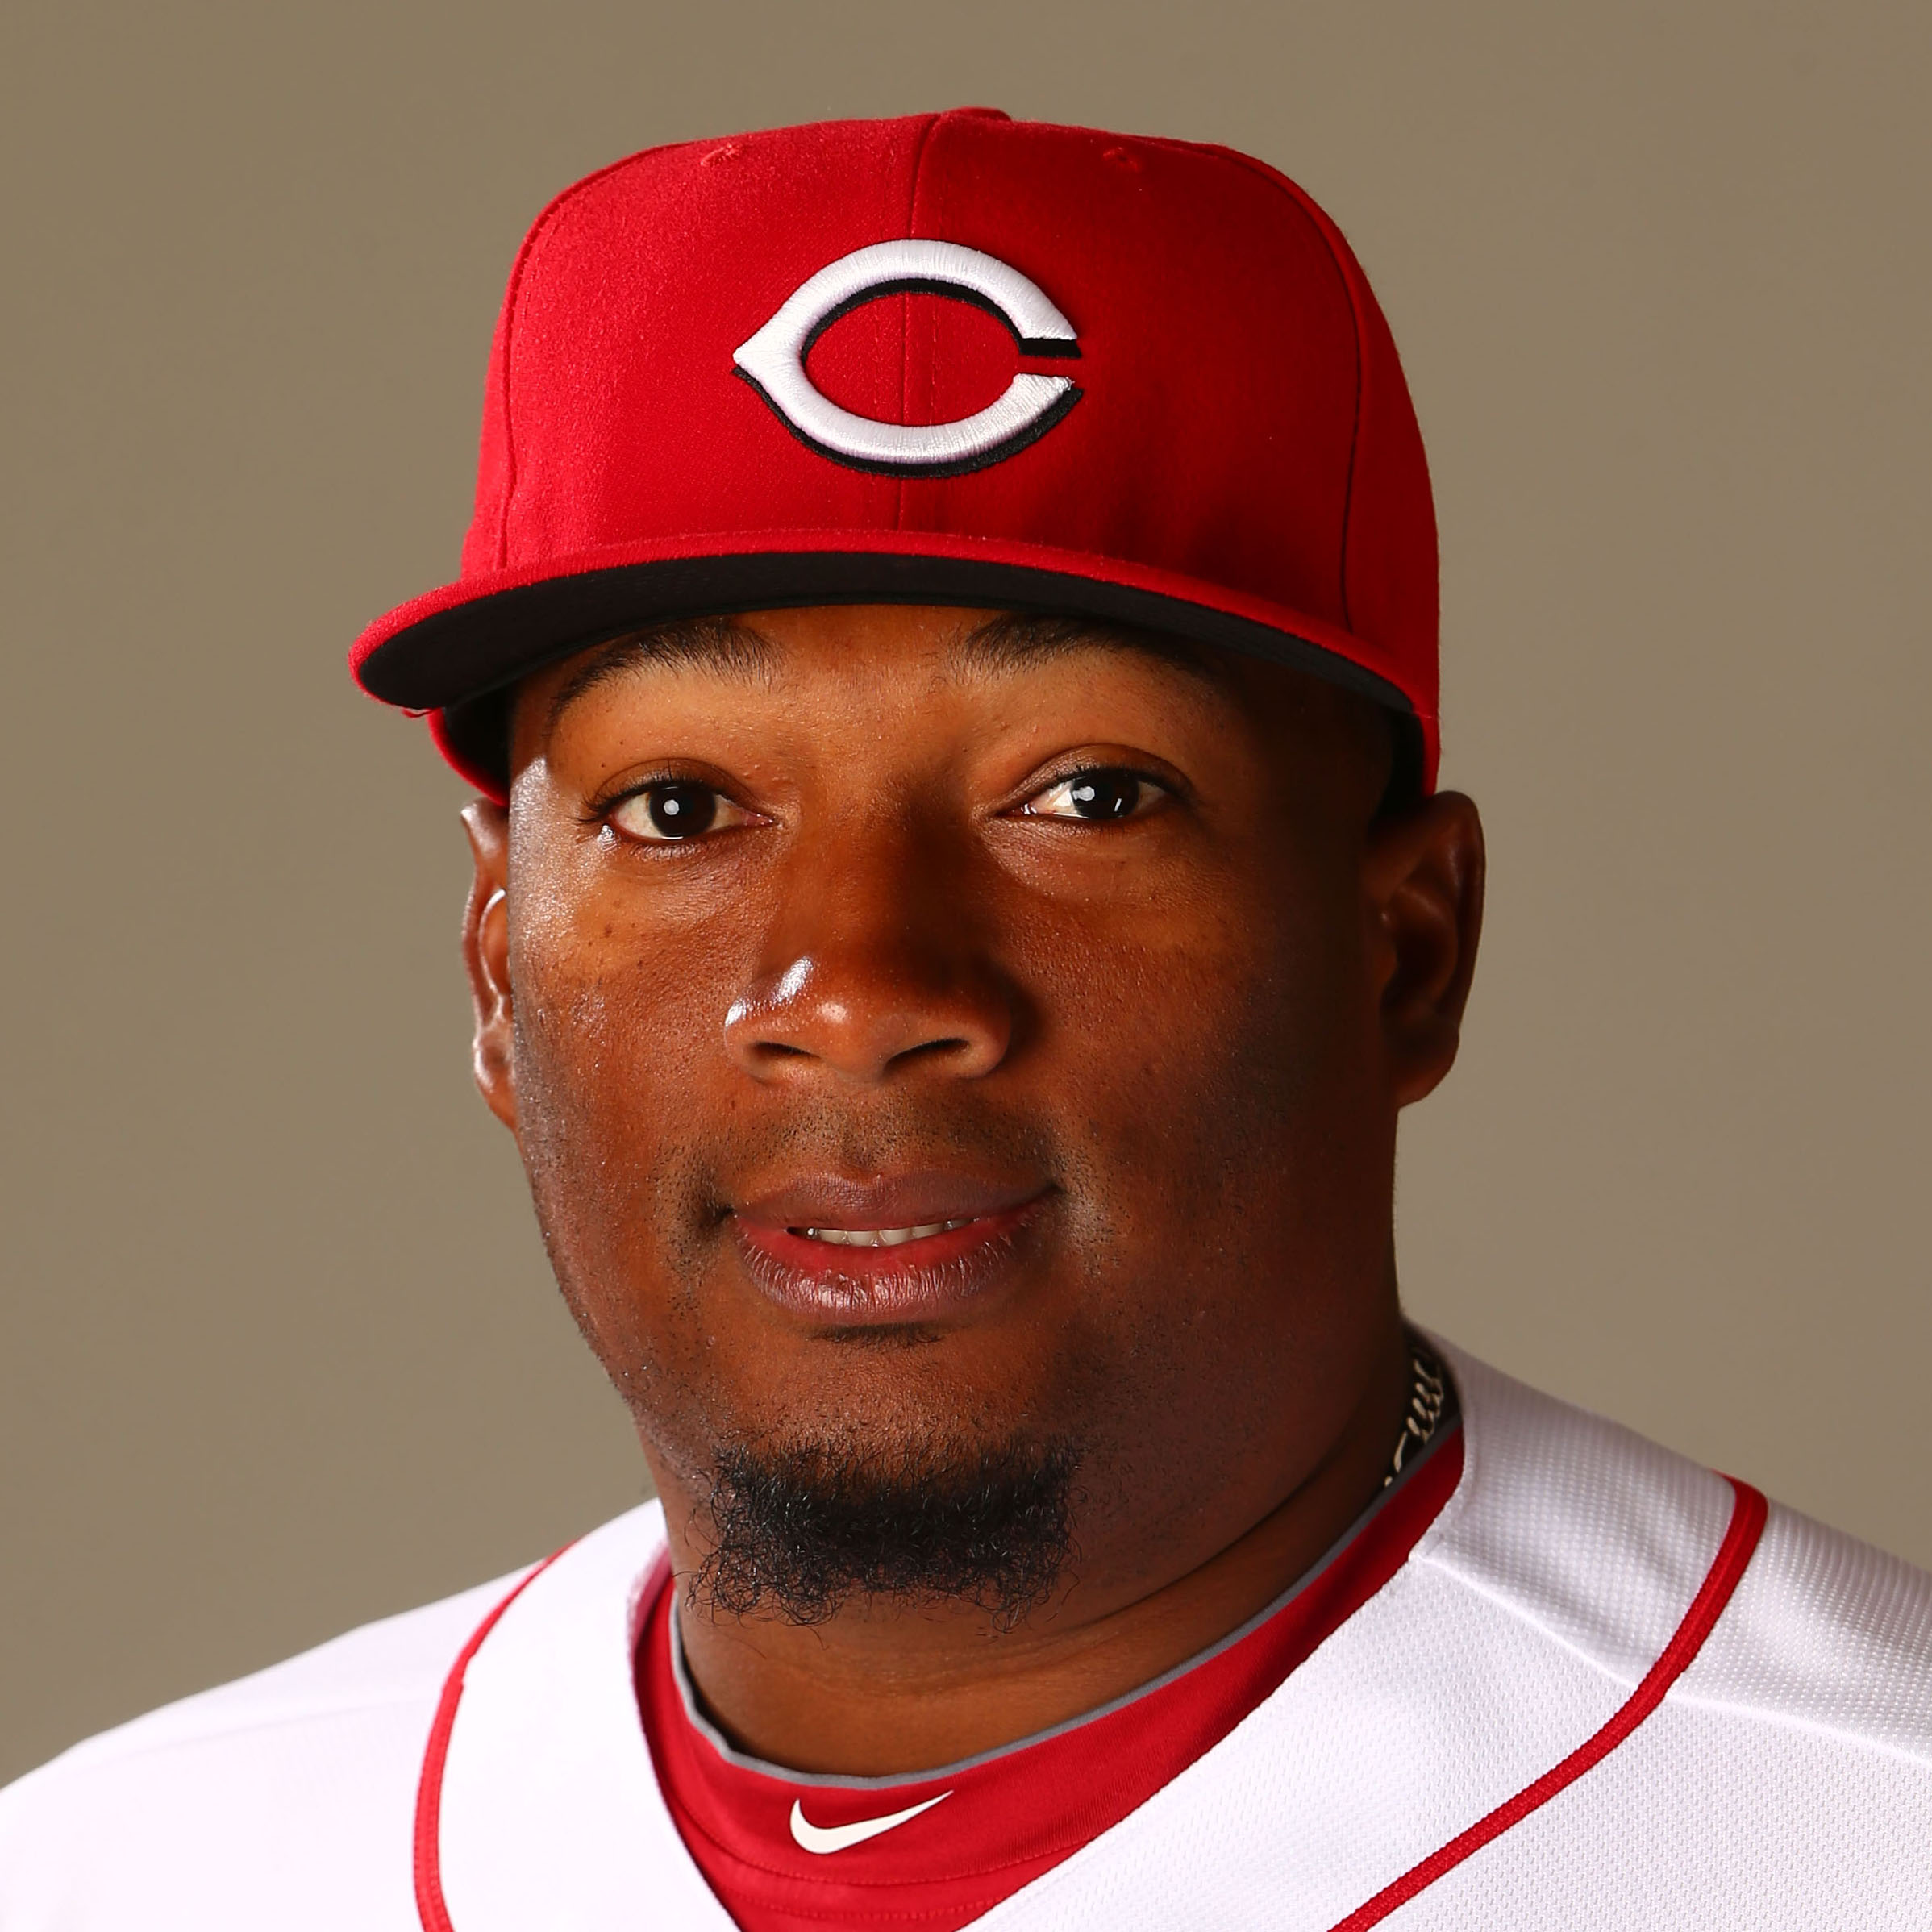 Jumbo Diaz Headshot